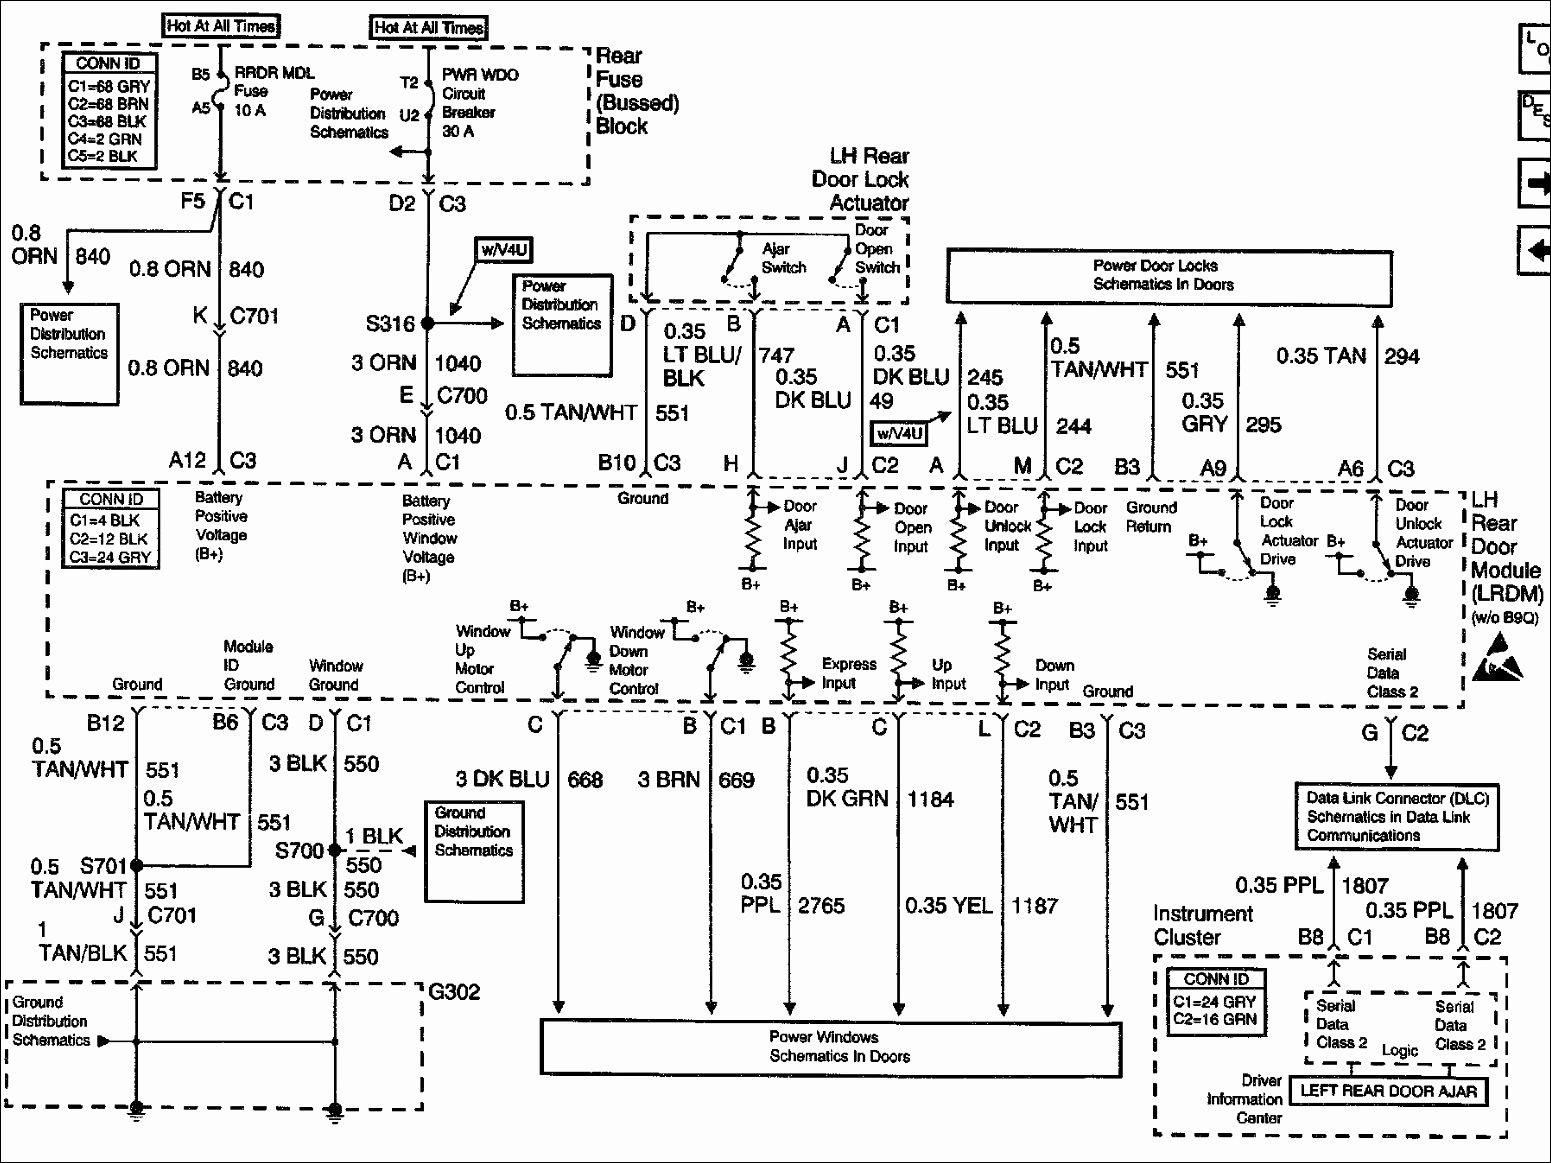 mr77a wiring diagram Download-Electric Guitar Wiring Diagram Elegant Xlr Wiring Diagram Beautiful Phono Plug Diagram Phono Plug Diagram 11-m